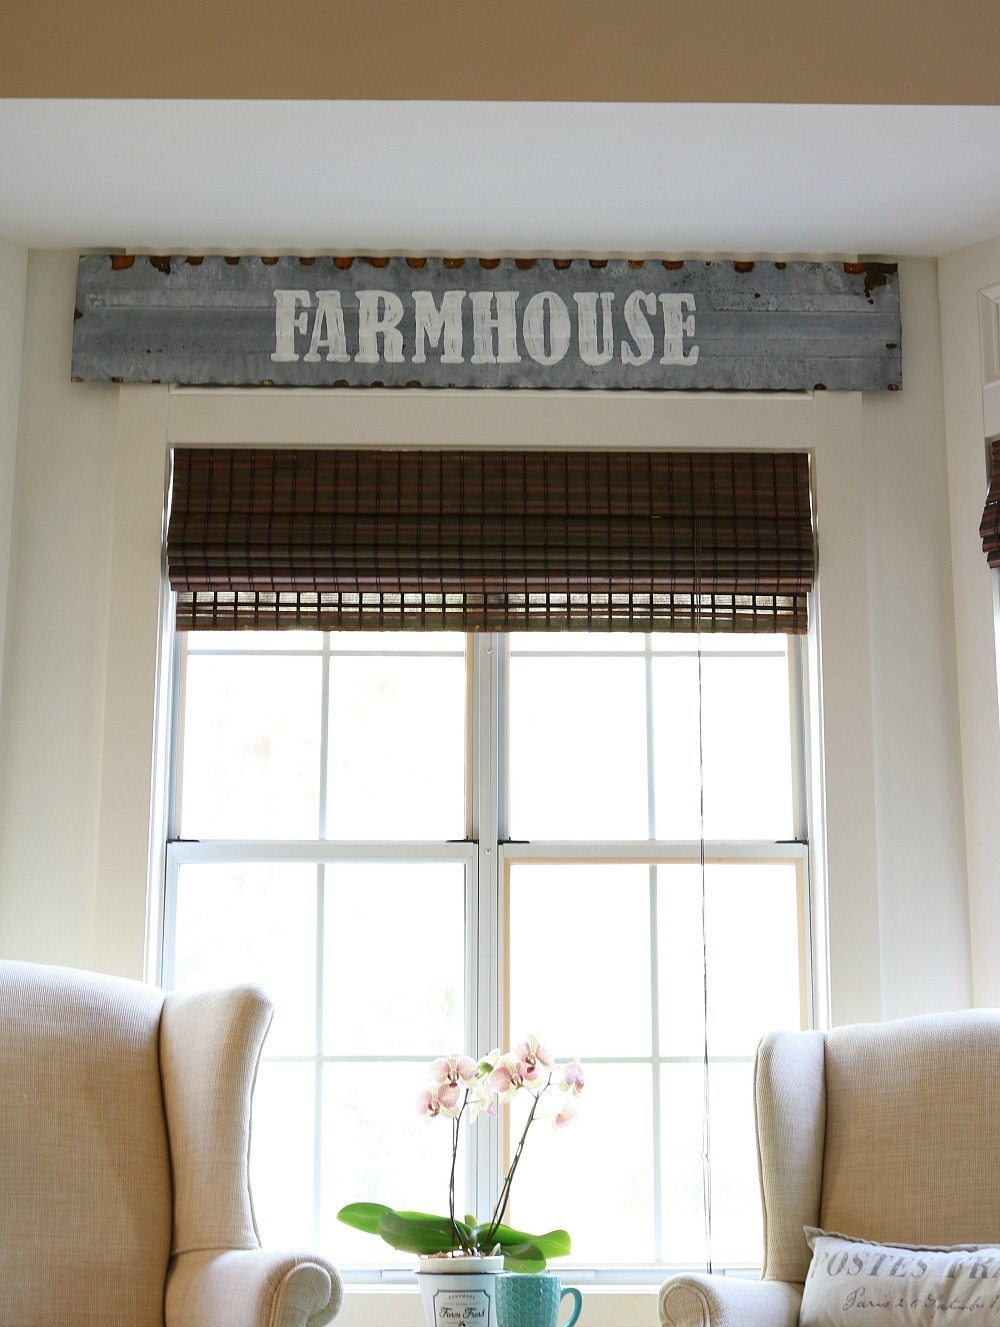 Chicken coop top for a metal farmhouse sign